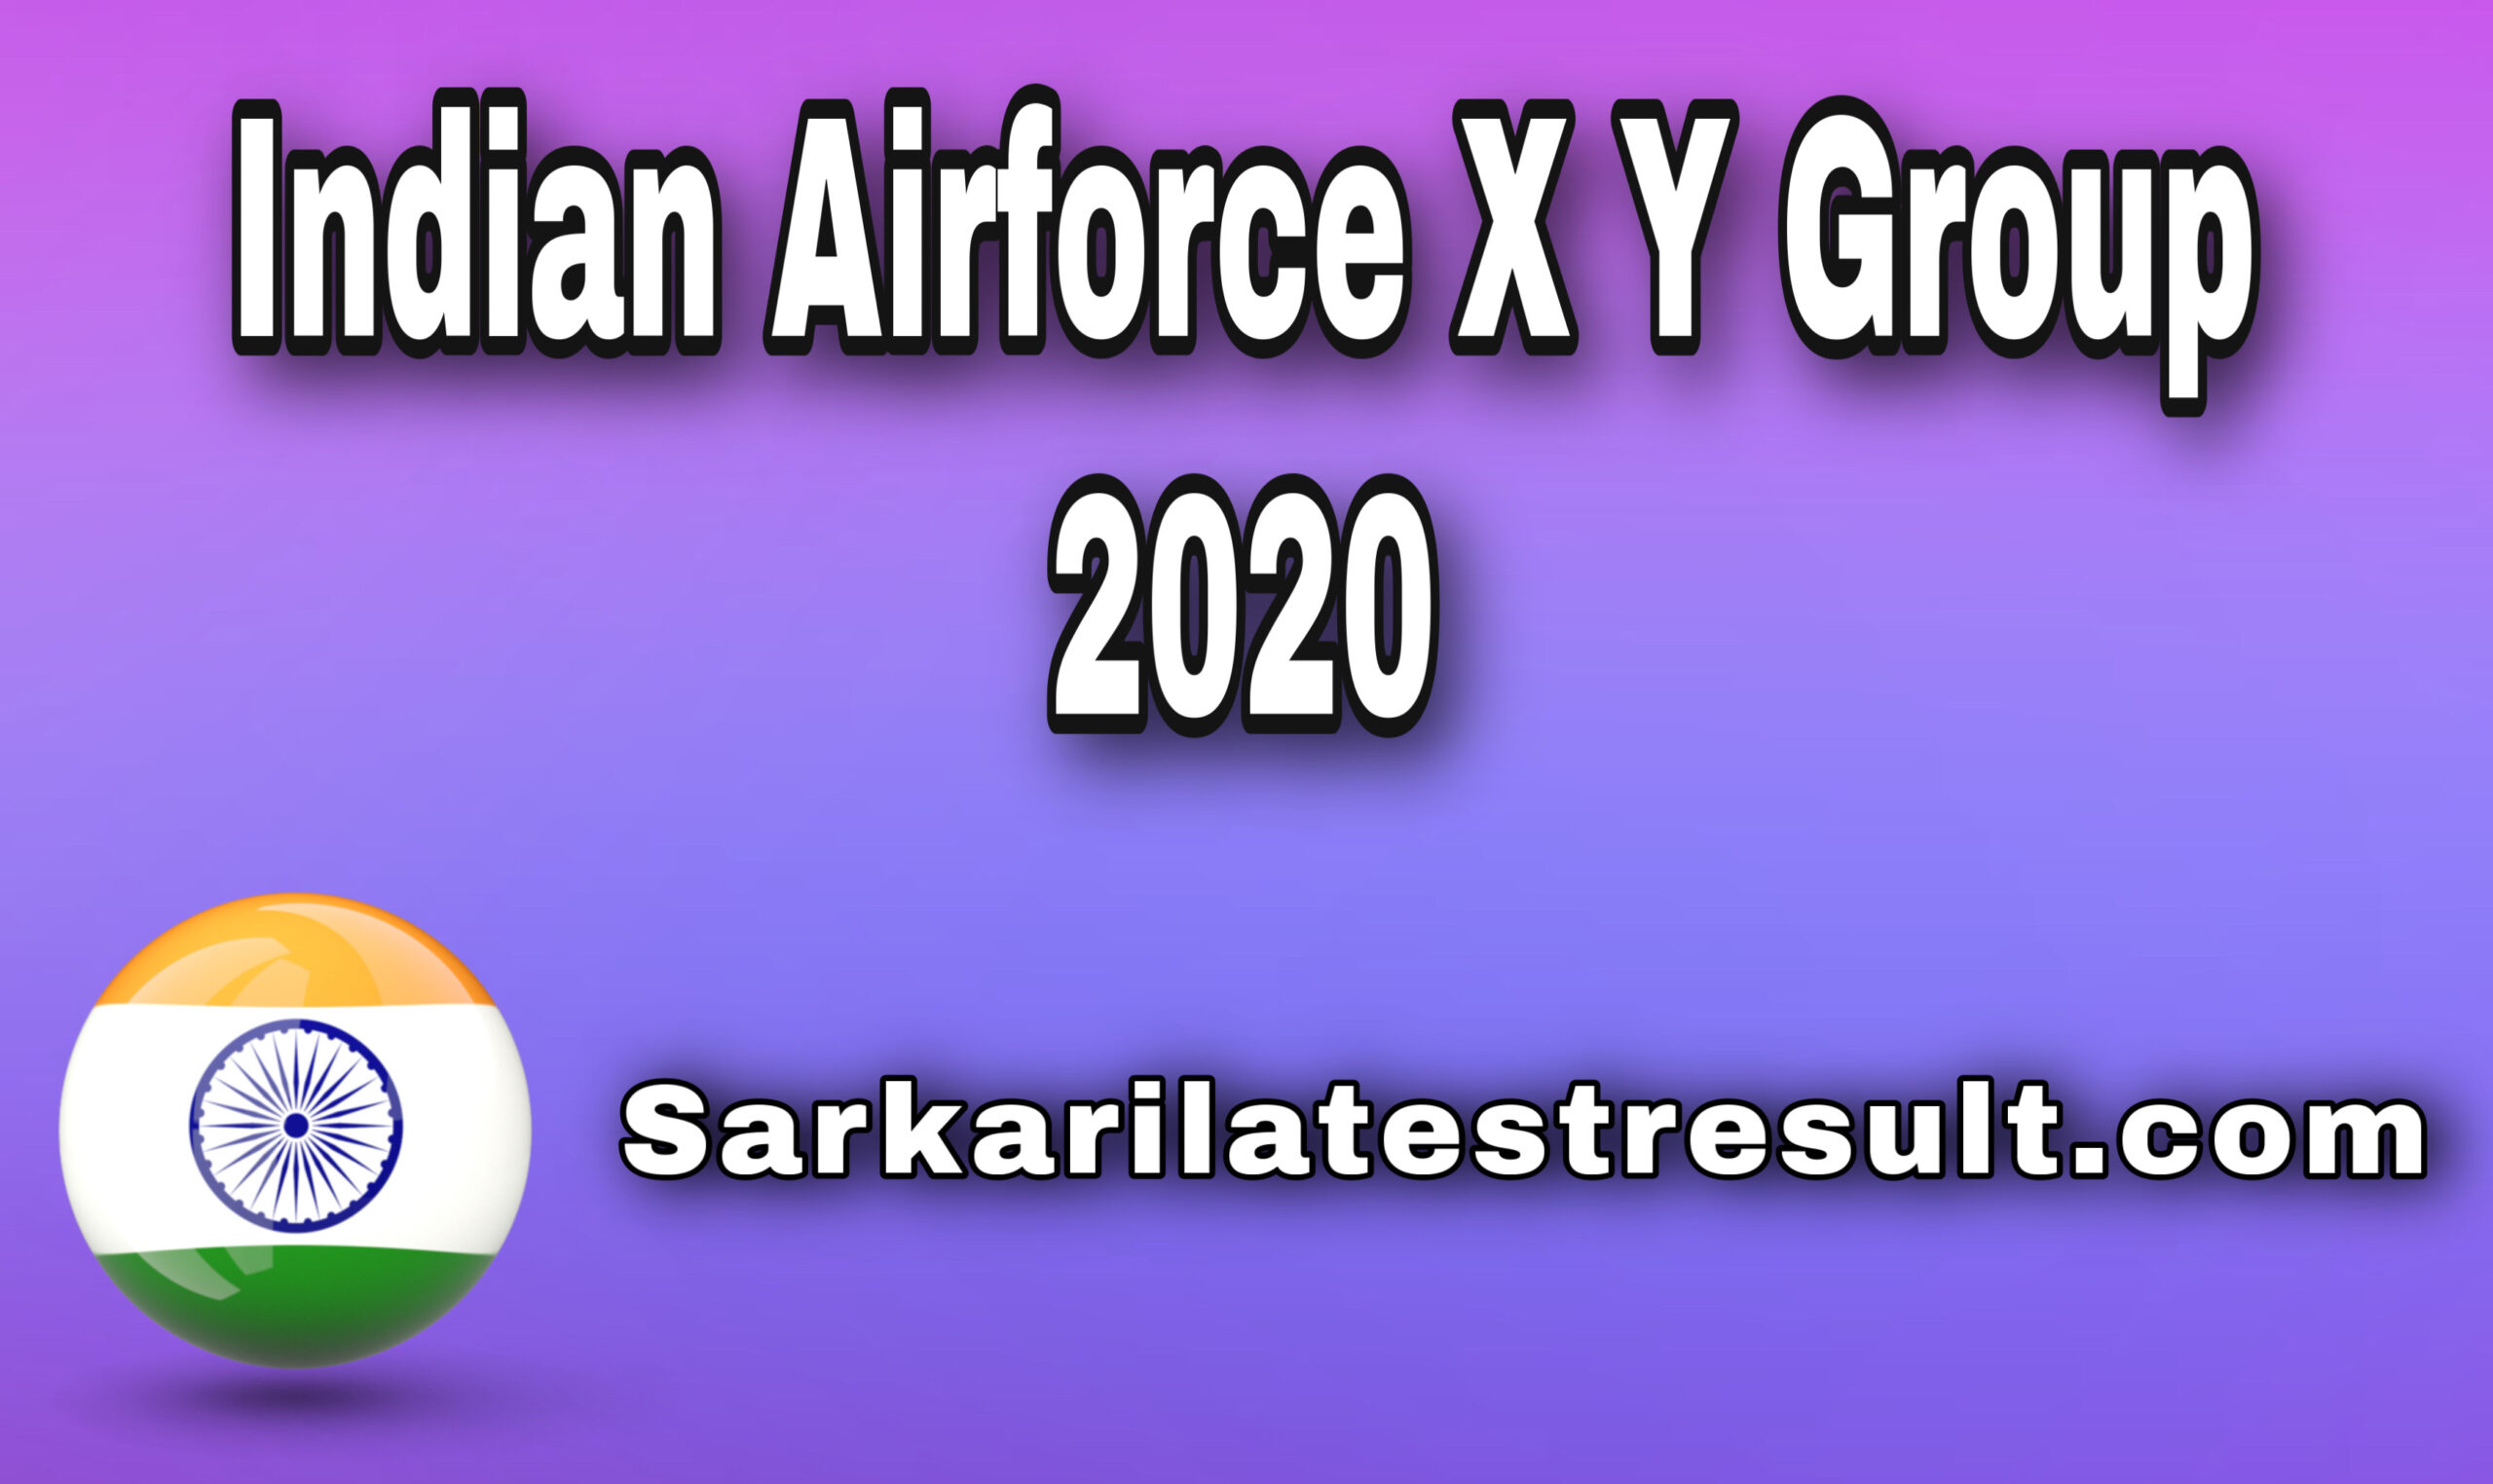 Air Force X Y Group Online Form 2021